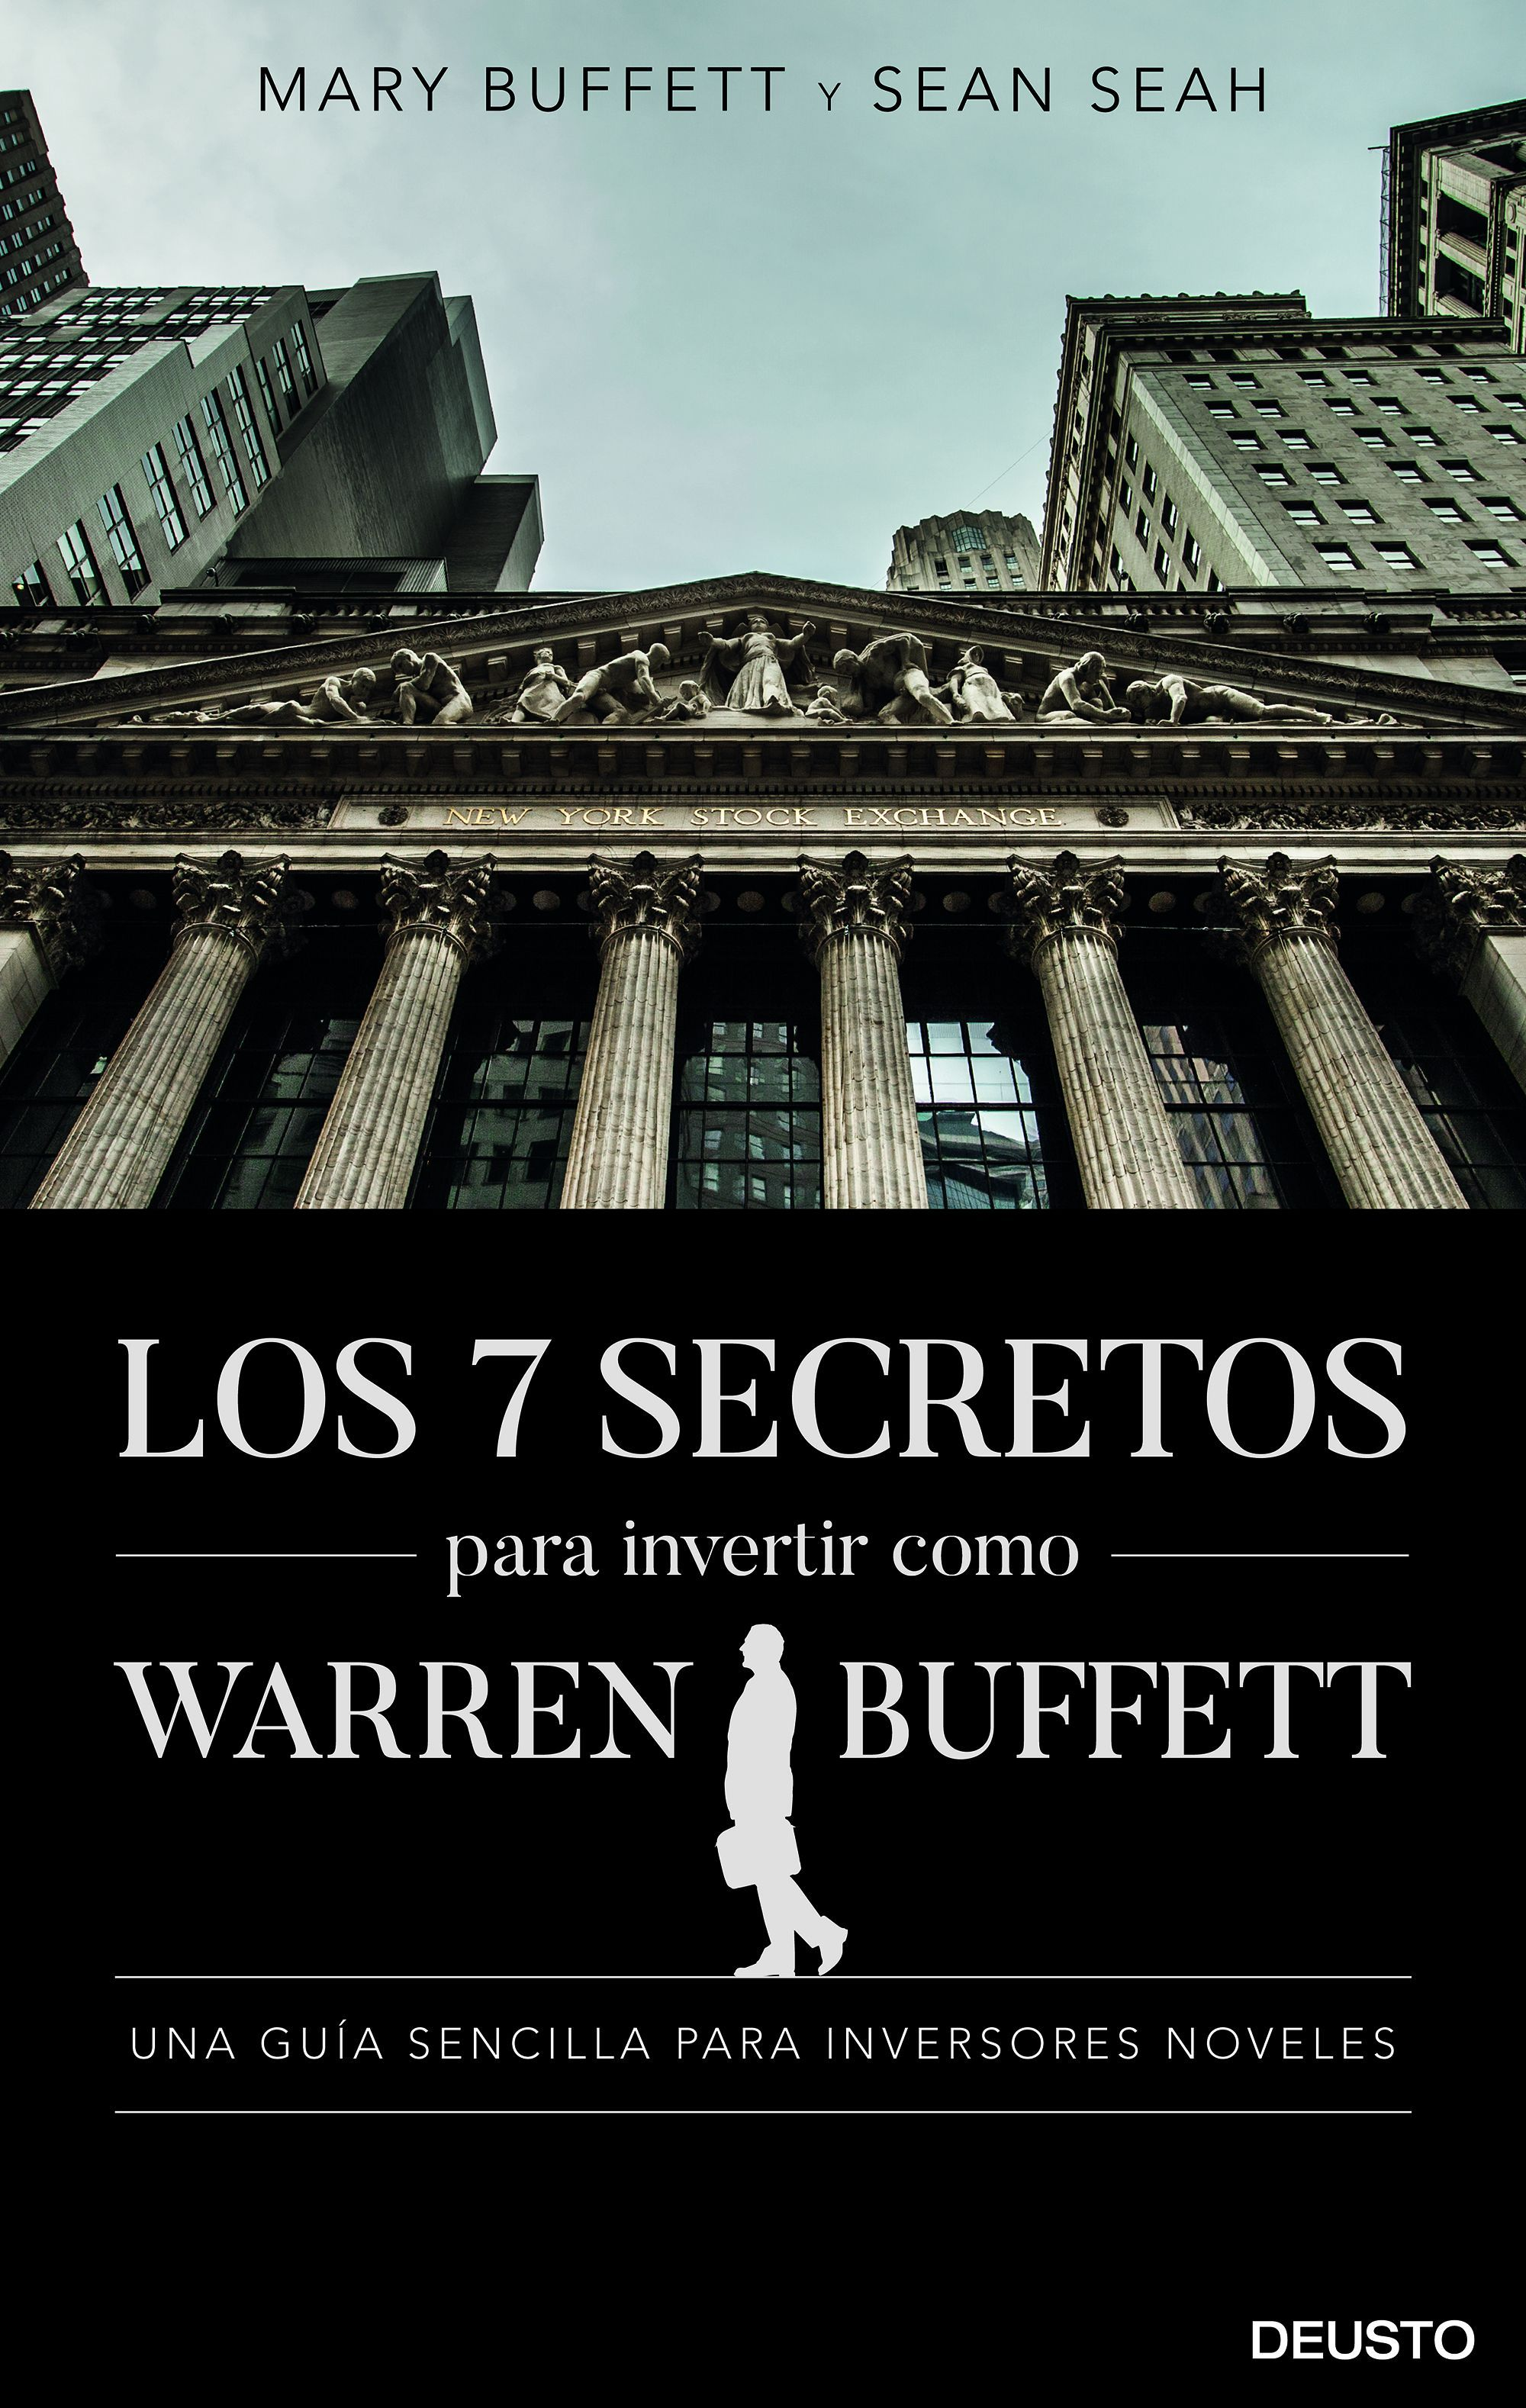 SIETE SECRETOS PARA INVERTIR COMO WARREN BUFFETT LOS